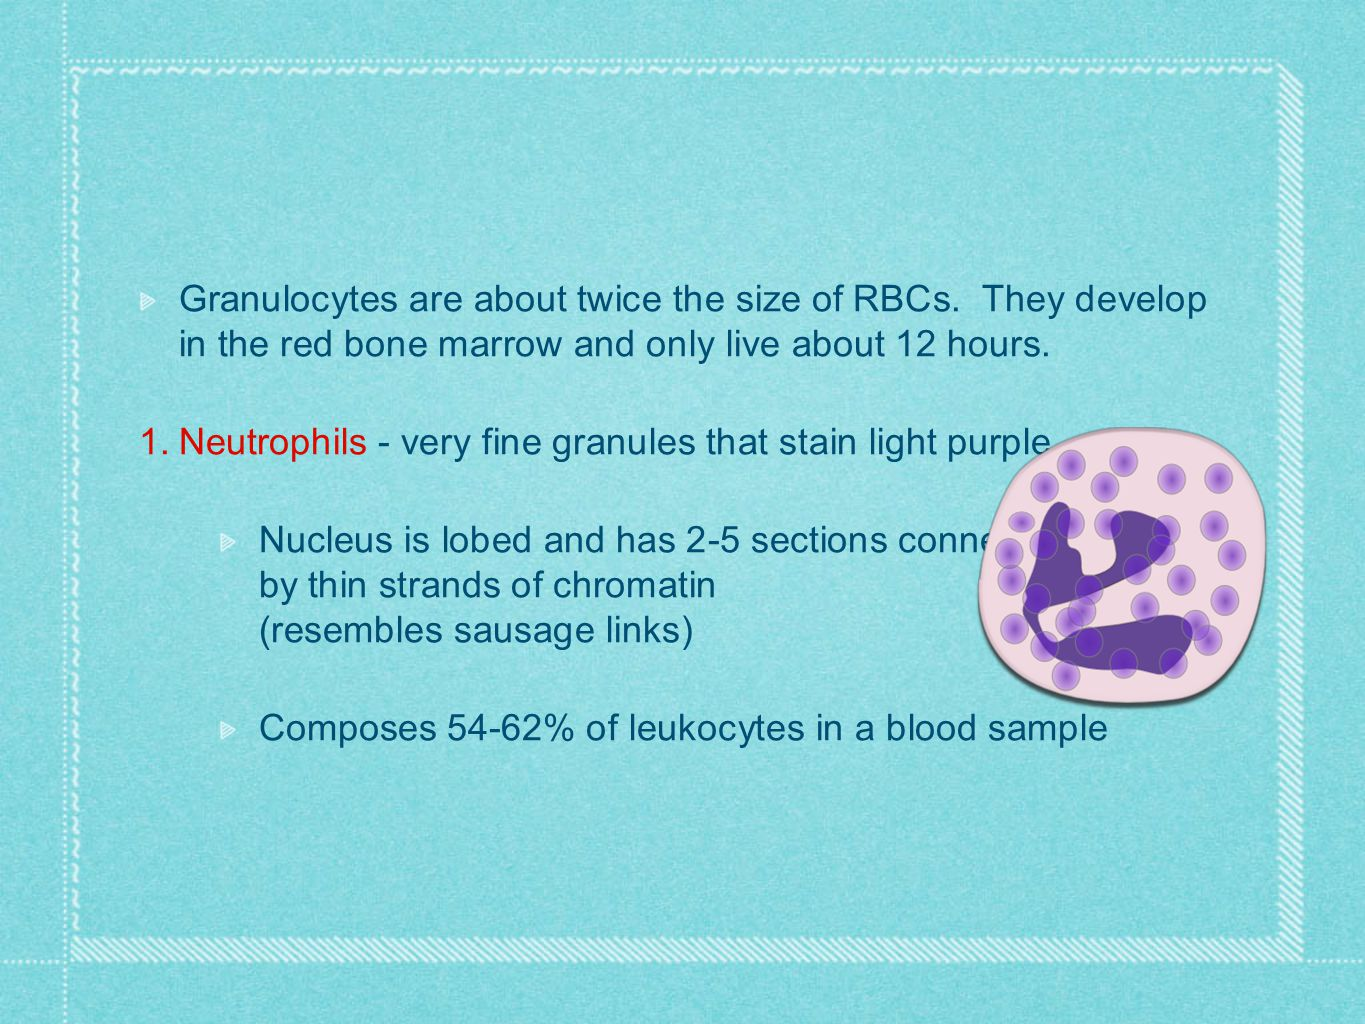 Granulocytes are about twice the size of RBCs. They develop in the red bone marrow and only live about 12 hours. 1. Neutrophils - very fine granules t